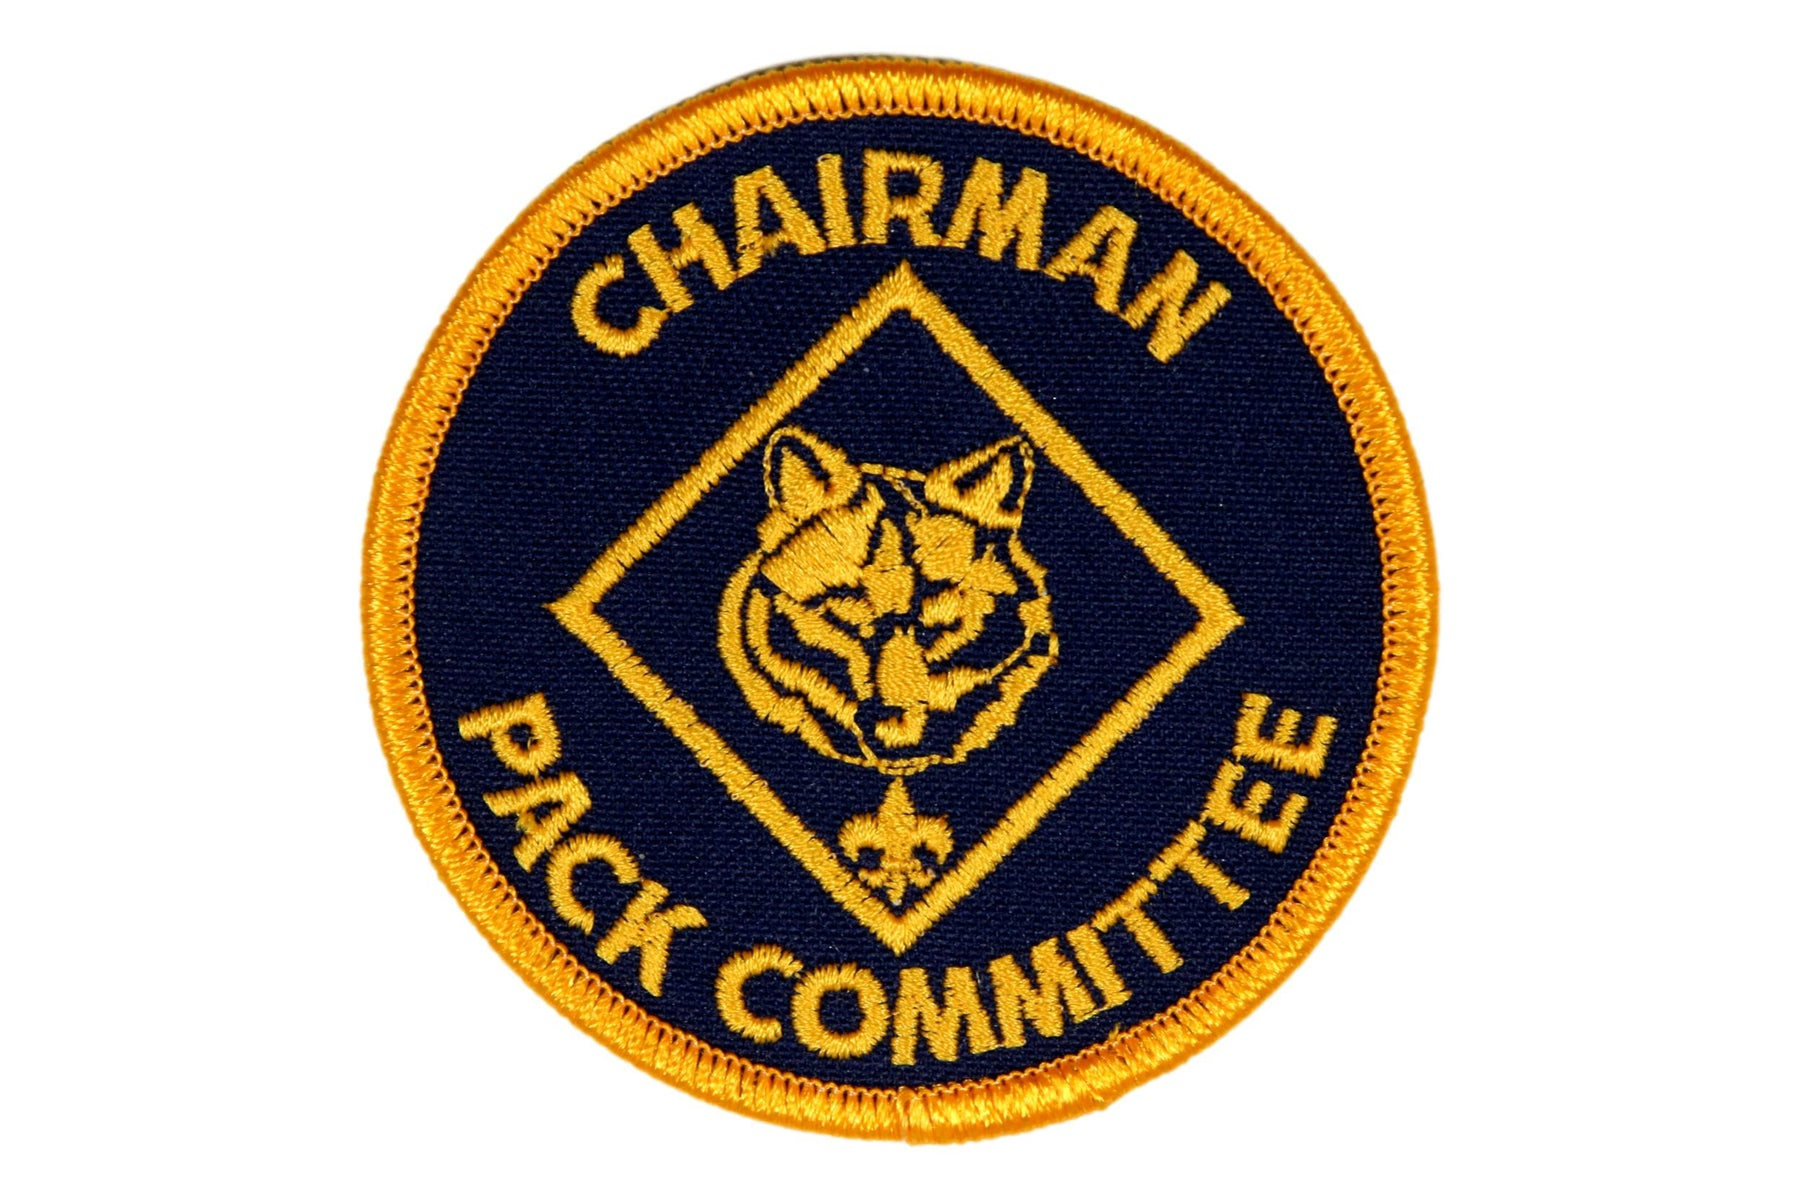 Pack Committee Chairman Patch